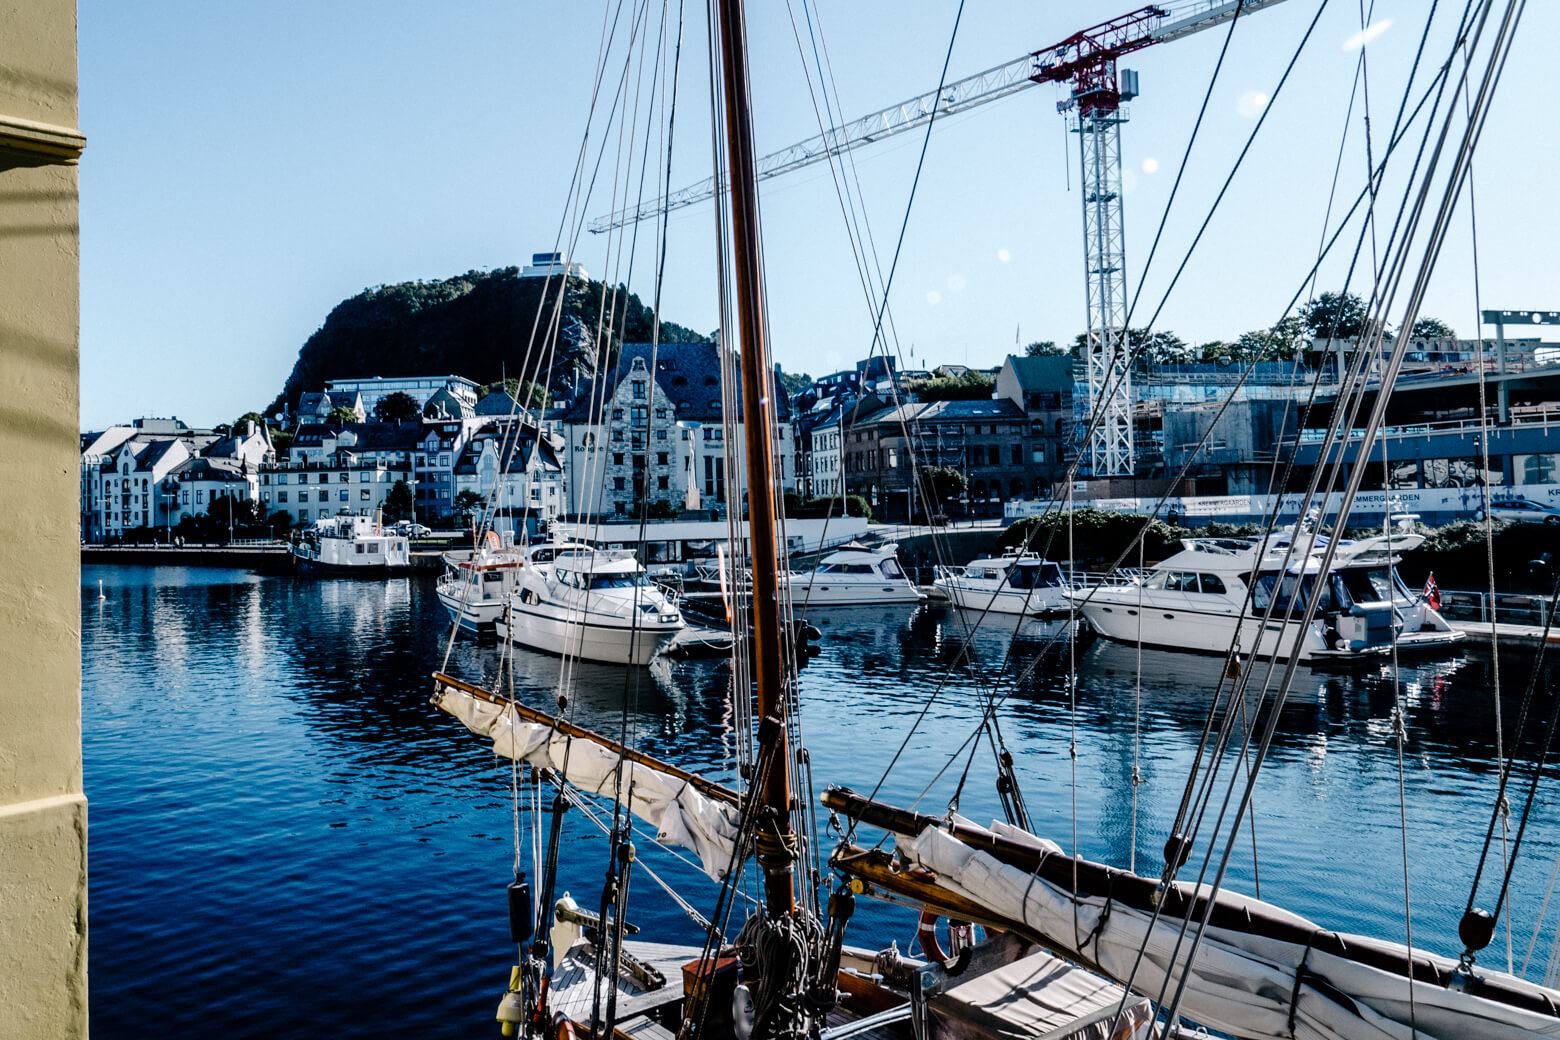 Boats in Alesund Harbour